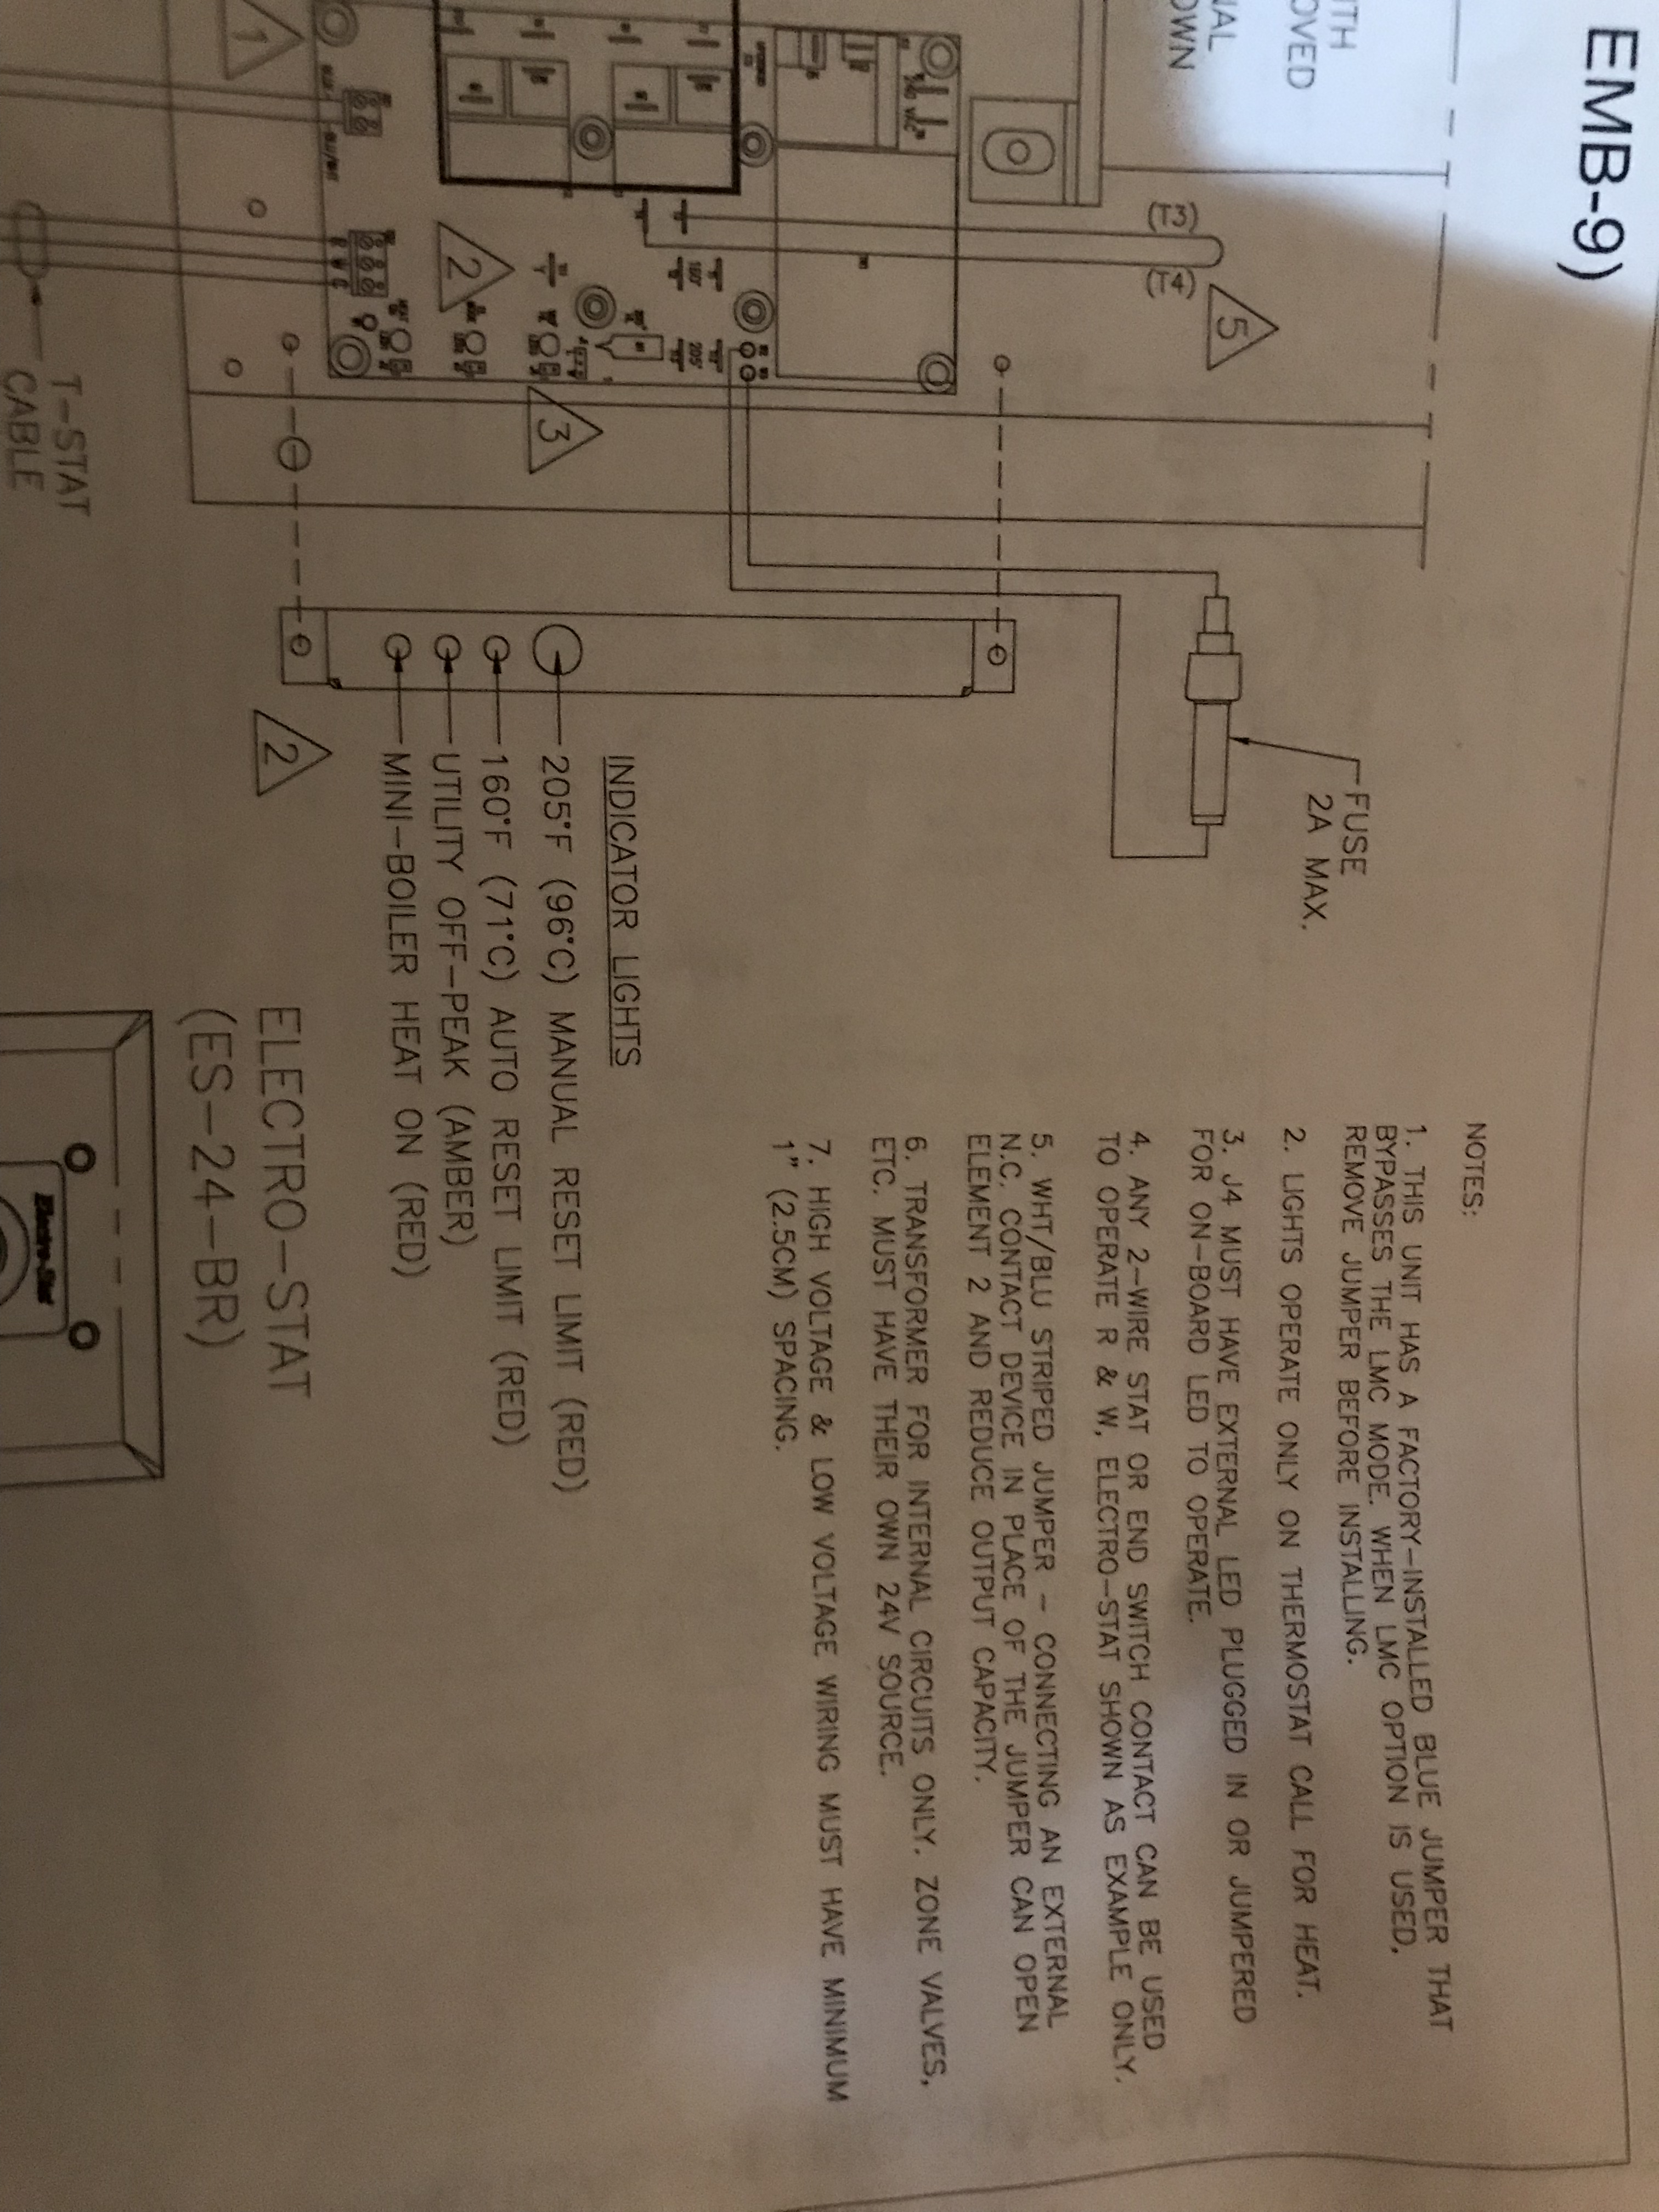 Staging Elements On Elctric Boiler Heating Help The Wall Led Low Voltage Wiring Schematic Diagram In Manual It Even Has A Suggestion Of Adding Normally Closed Contact Device Place Jumper To Do What I Am Looking